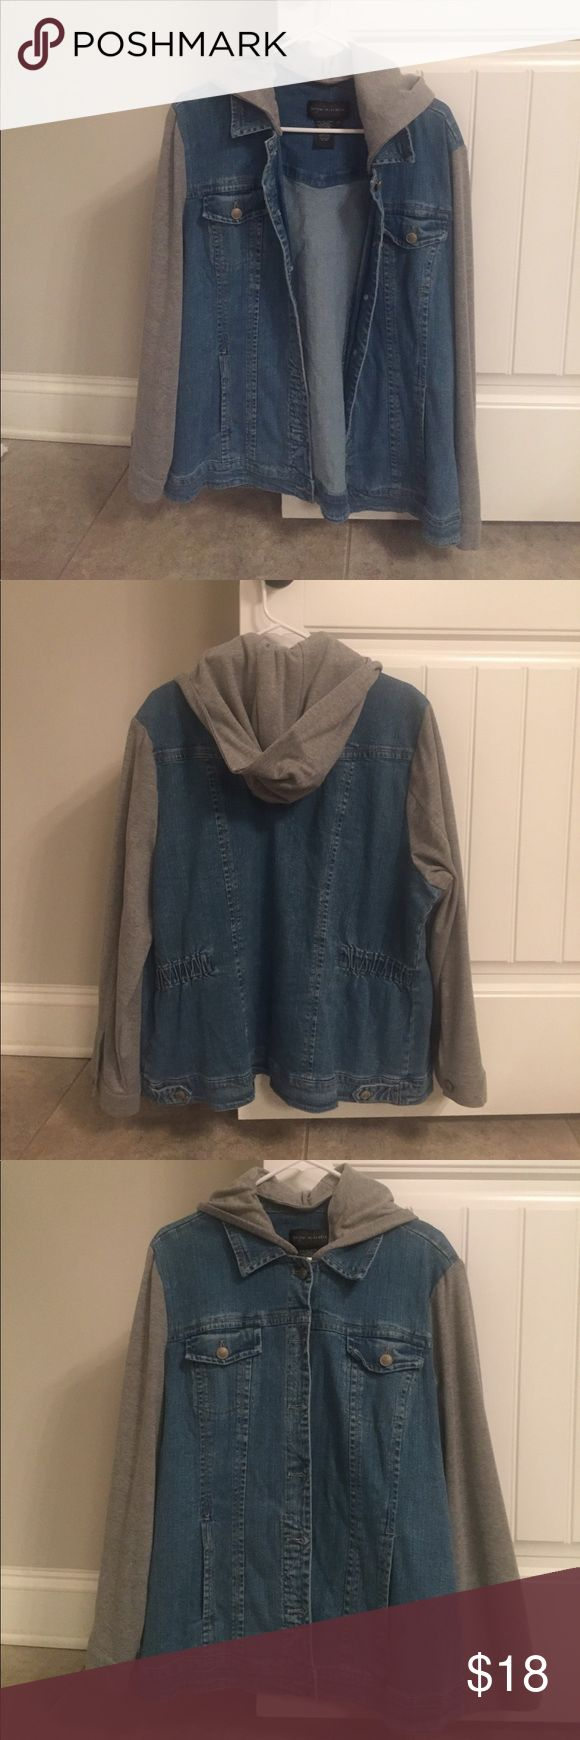 Jean Jacket with removable hood NWOT Excellent condition jean jacket with sweatshirt hood and sleeves. Hood detaches via buttons and jacket has two hand pockets and chest pockets that button. Bought from Asos Curve and never worn ASOS Curve Jackets & Coats Jean Jackets